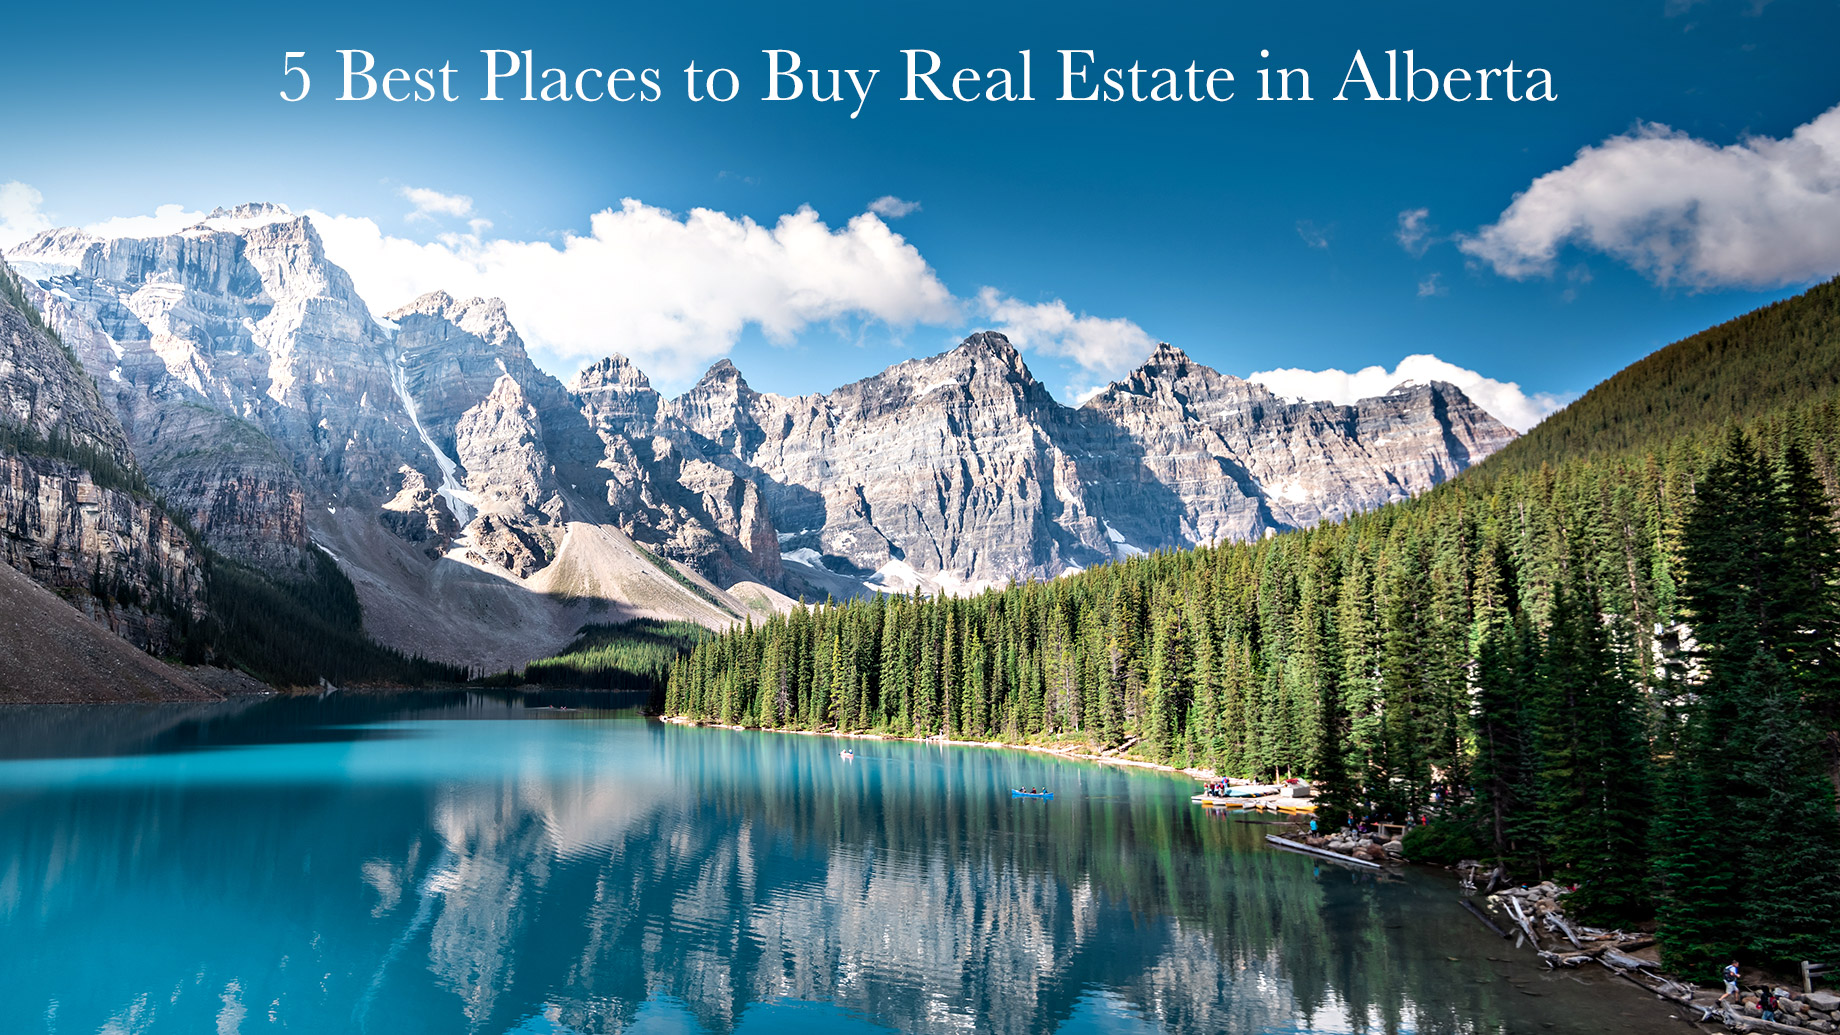 5 Best Places to Buy Real Estate in Alberta